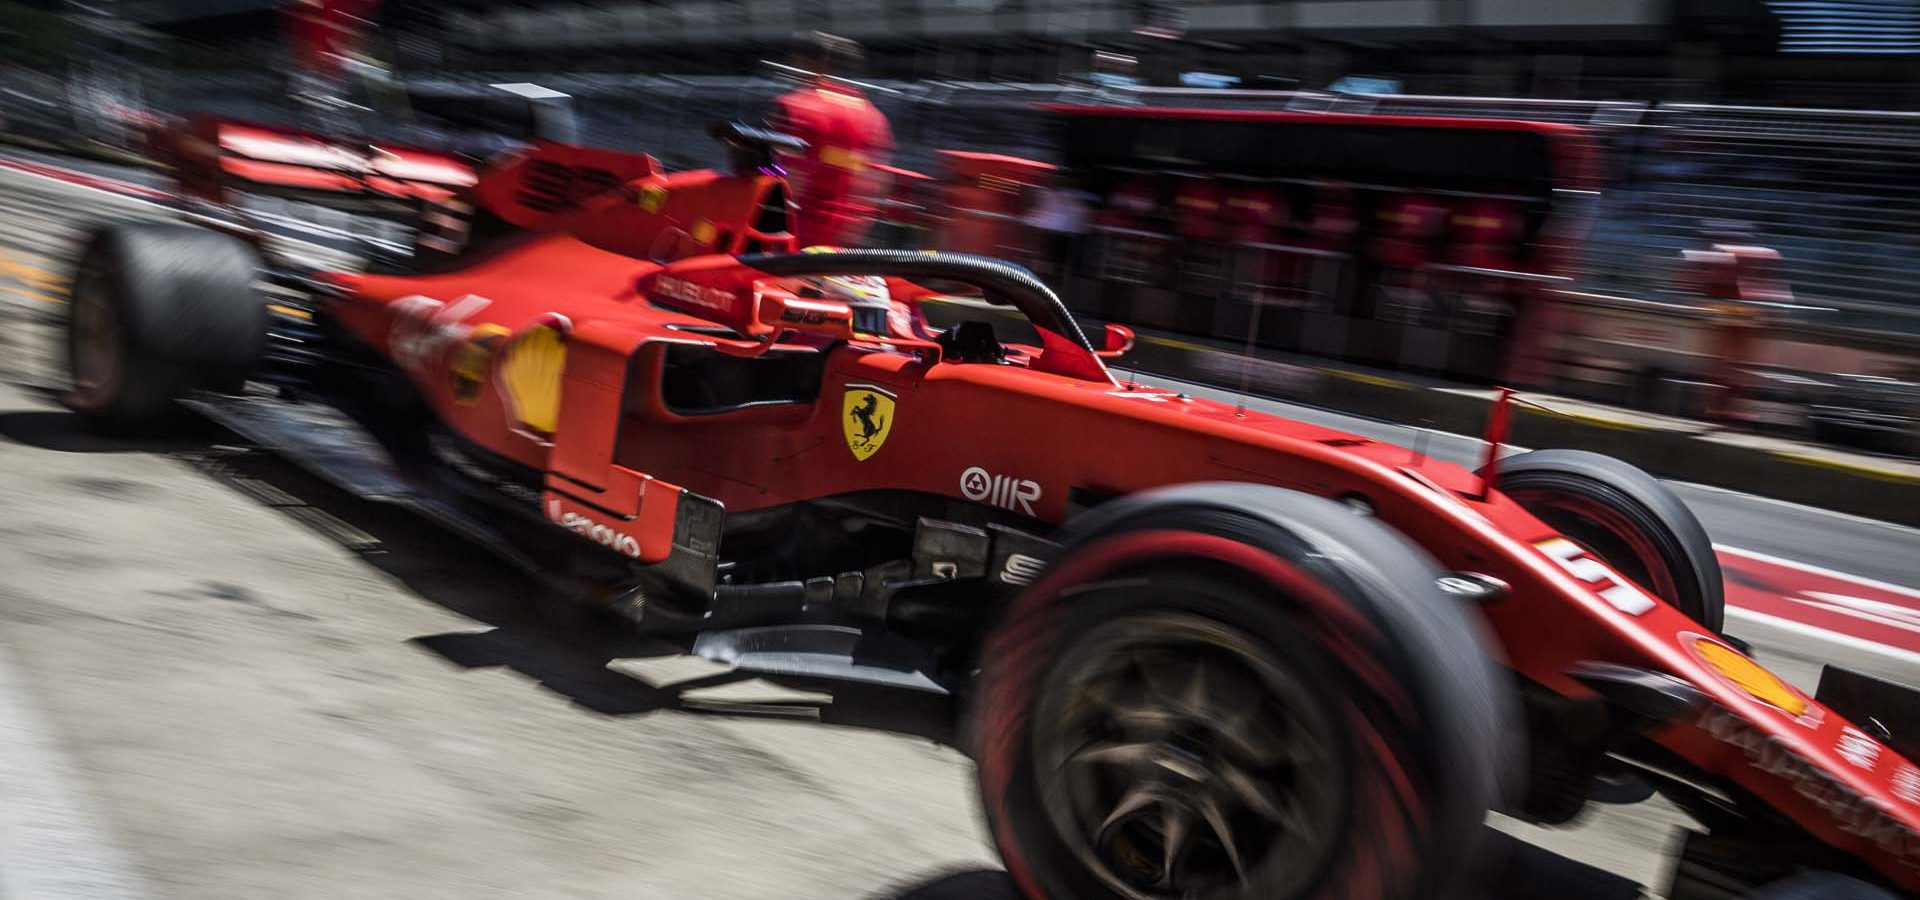 Sebastian Vettel races at the FIA Formula One World Championship 2019 in Spielberg, Austria on June 29, 2019 // Philip Platzer/Red Bull Content Pool // AP-1ZSYDWNA51W11 // Usage for editorial use only // Please go to www.redbullcontentpool.com for further information. //